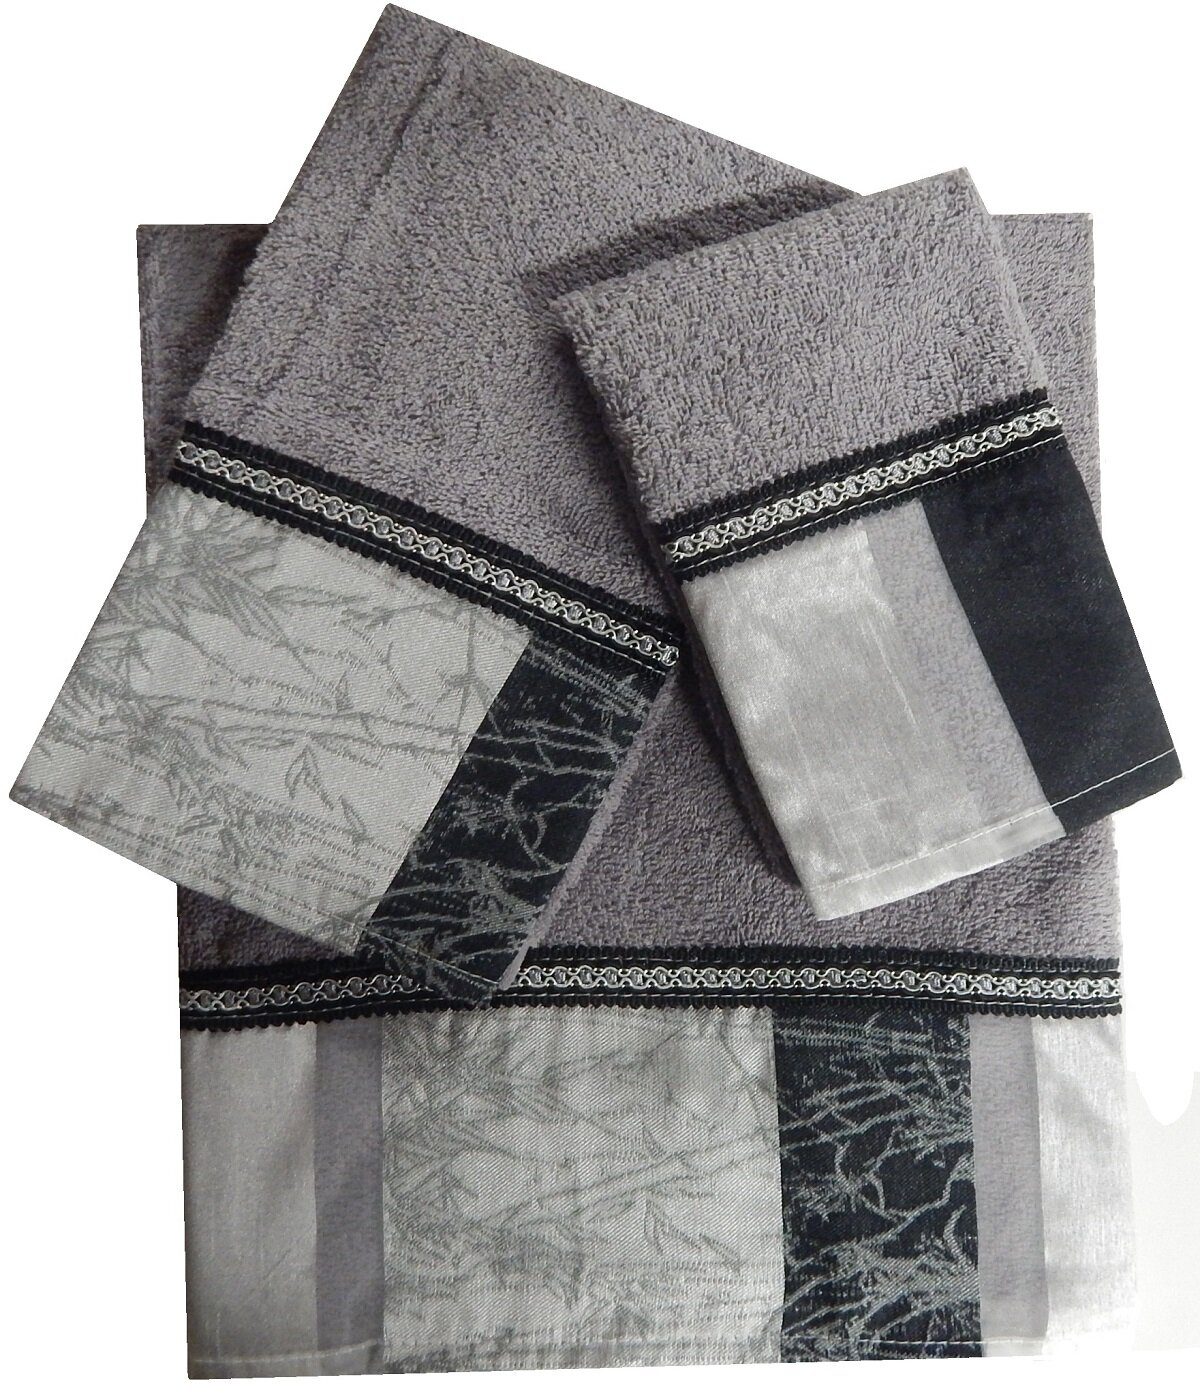 D Orlando 3 Piece 100 Cotton Towel Set